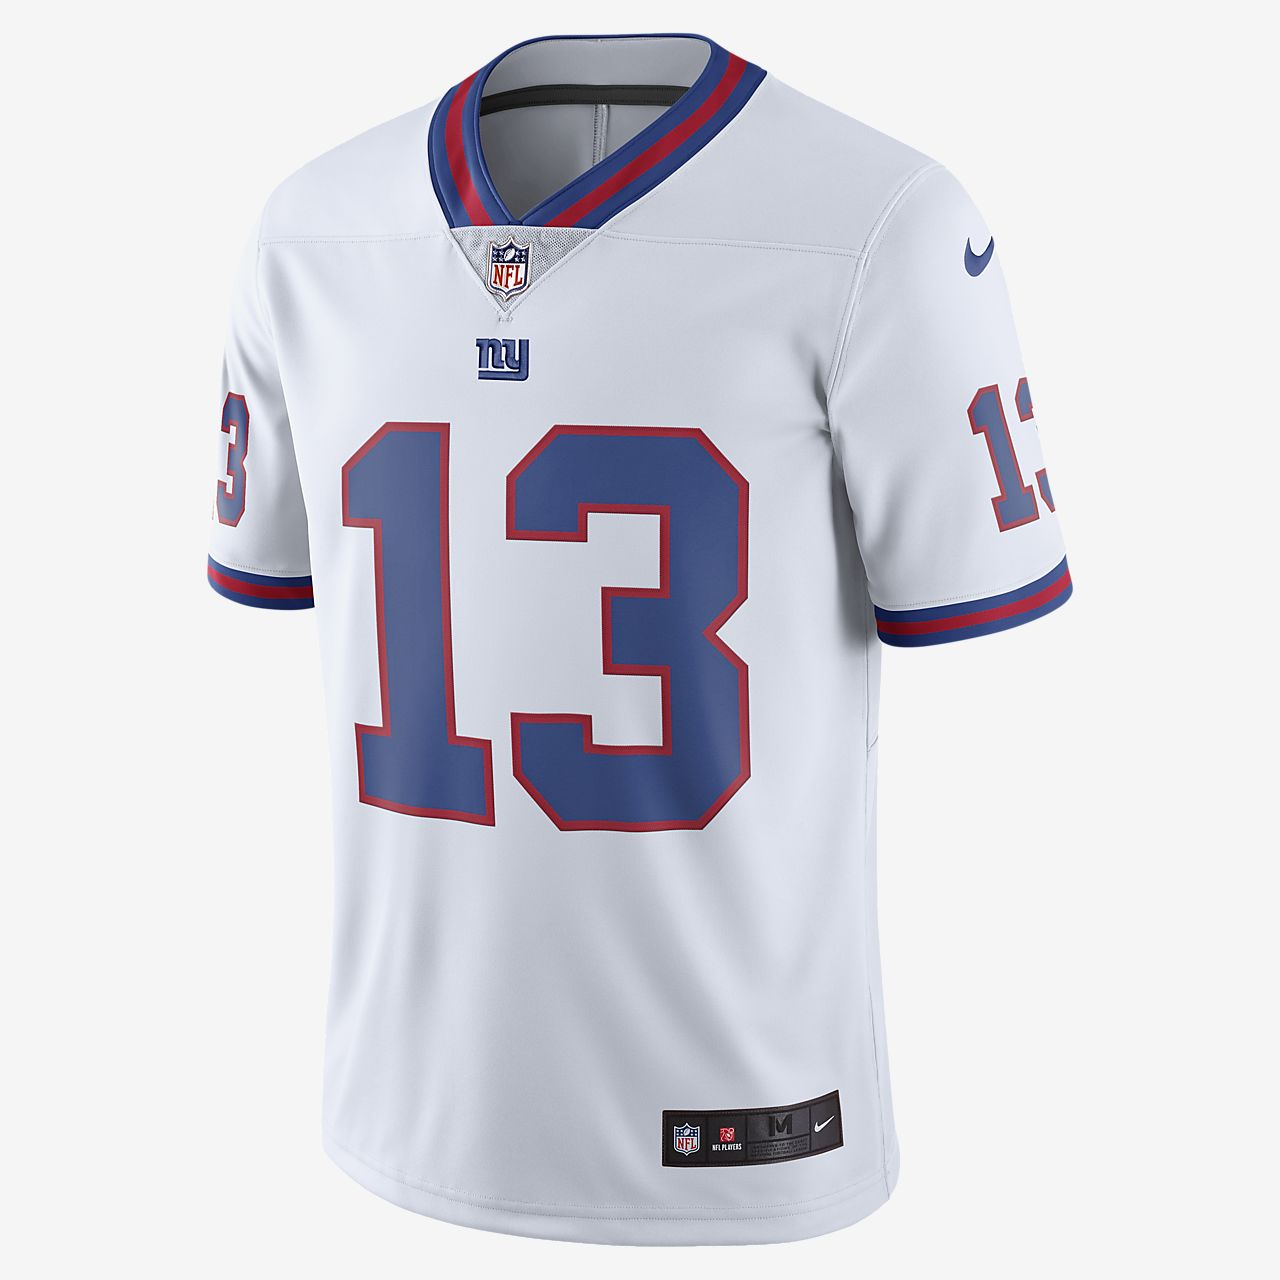 99aa1ec98 ... Camisola de jogo de futebol americano NFL New York Giants Color Rush  Limited (Odell Beckham